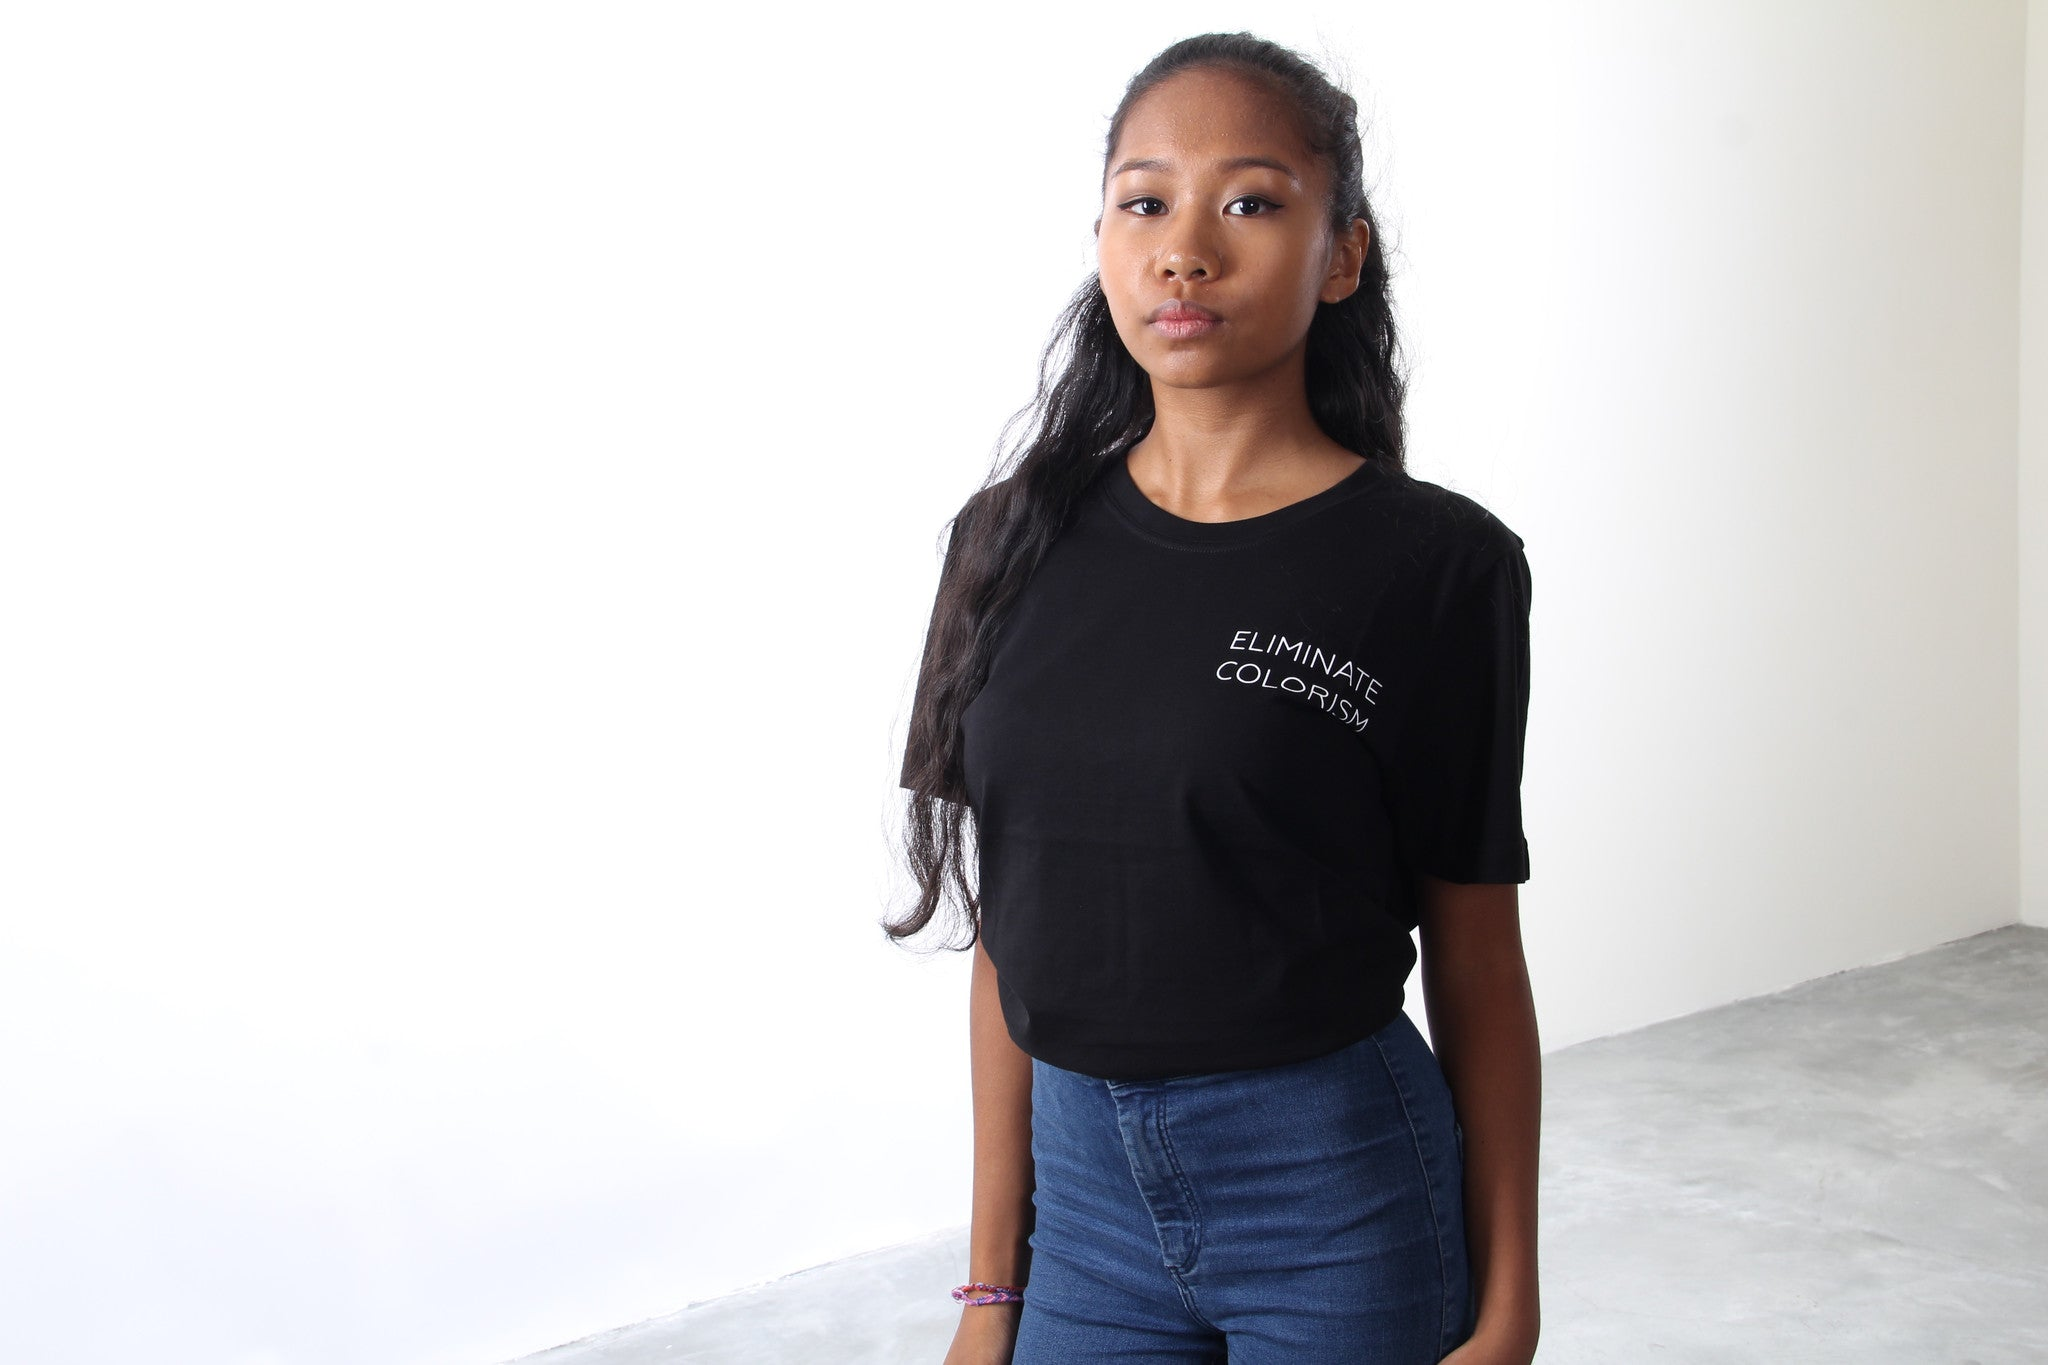 Eliminate Colorism Tee